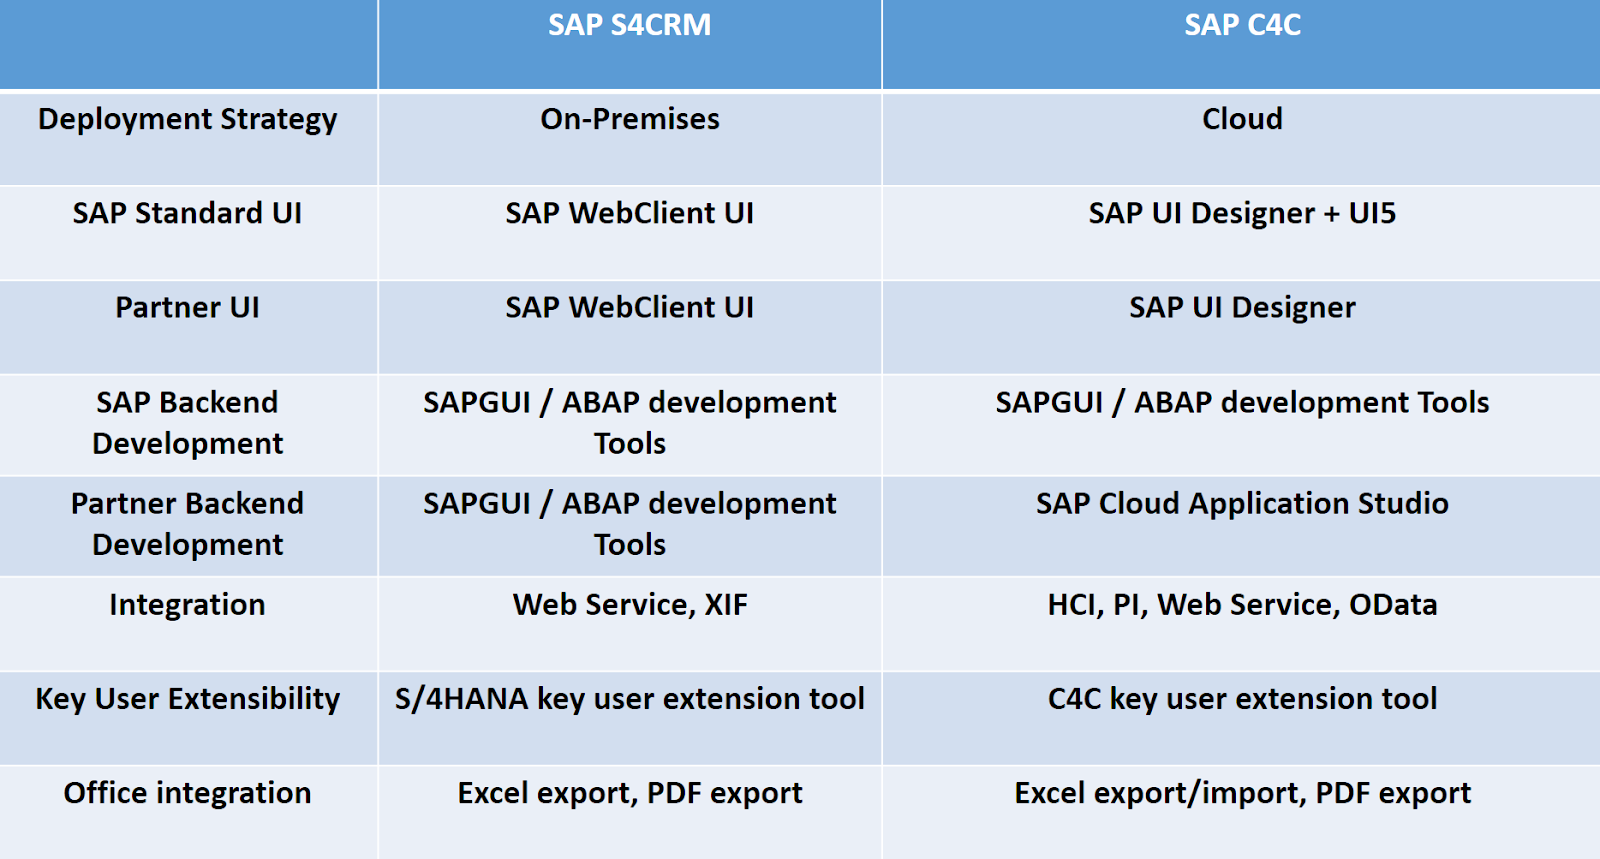 SAP ABAP Central: Technical comparison between S4CRM and C4C